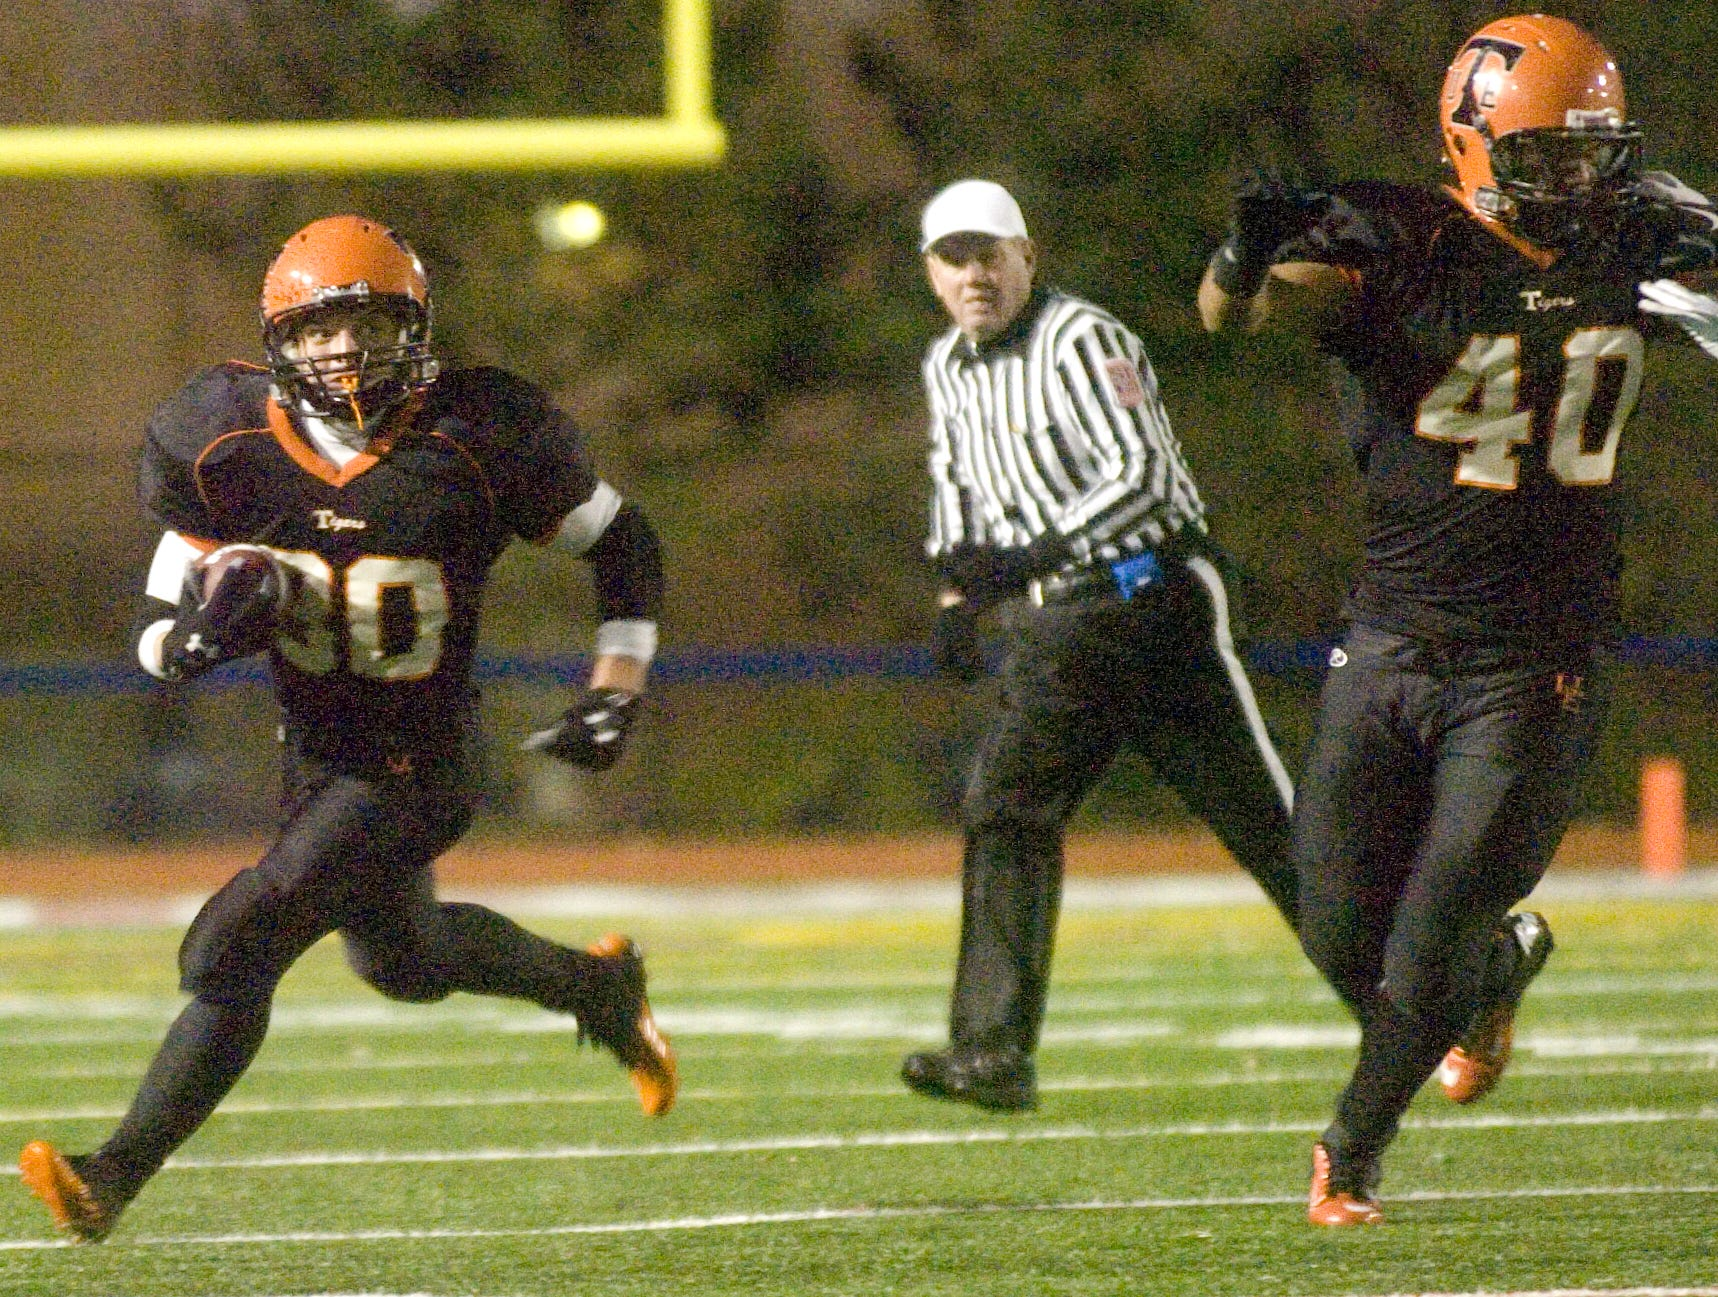 Michael Cheslock runs for a 9-yard gain in the second half of U-E?s 27-3 victory in the 2012 Section 4 Class A title game at Alumni Stadium.